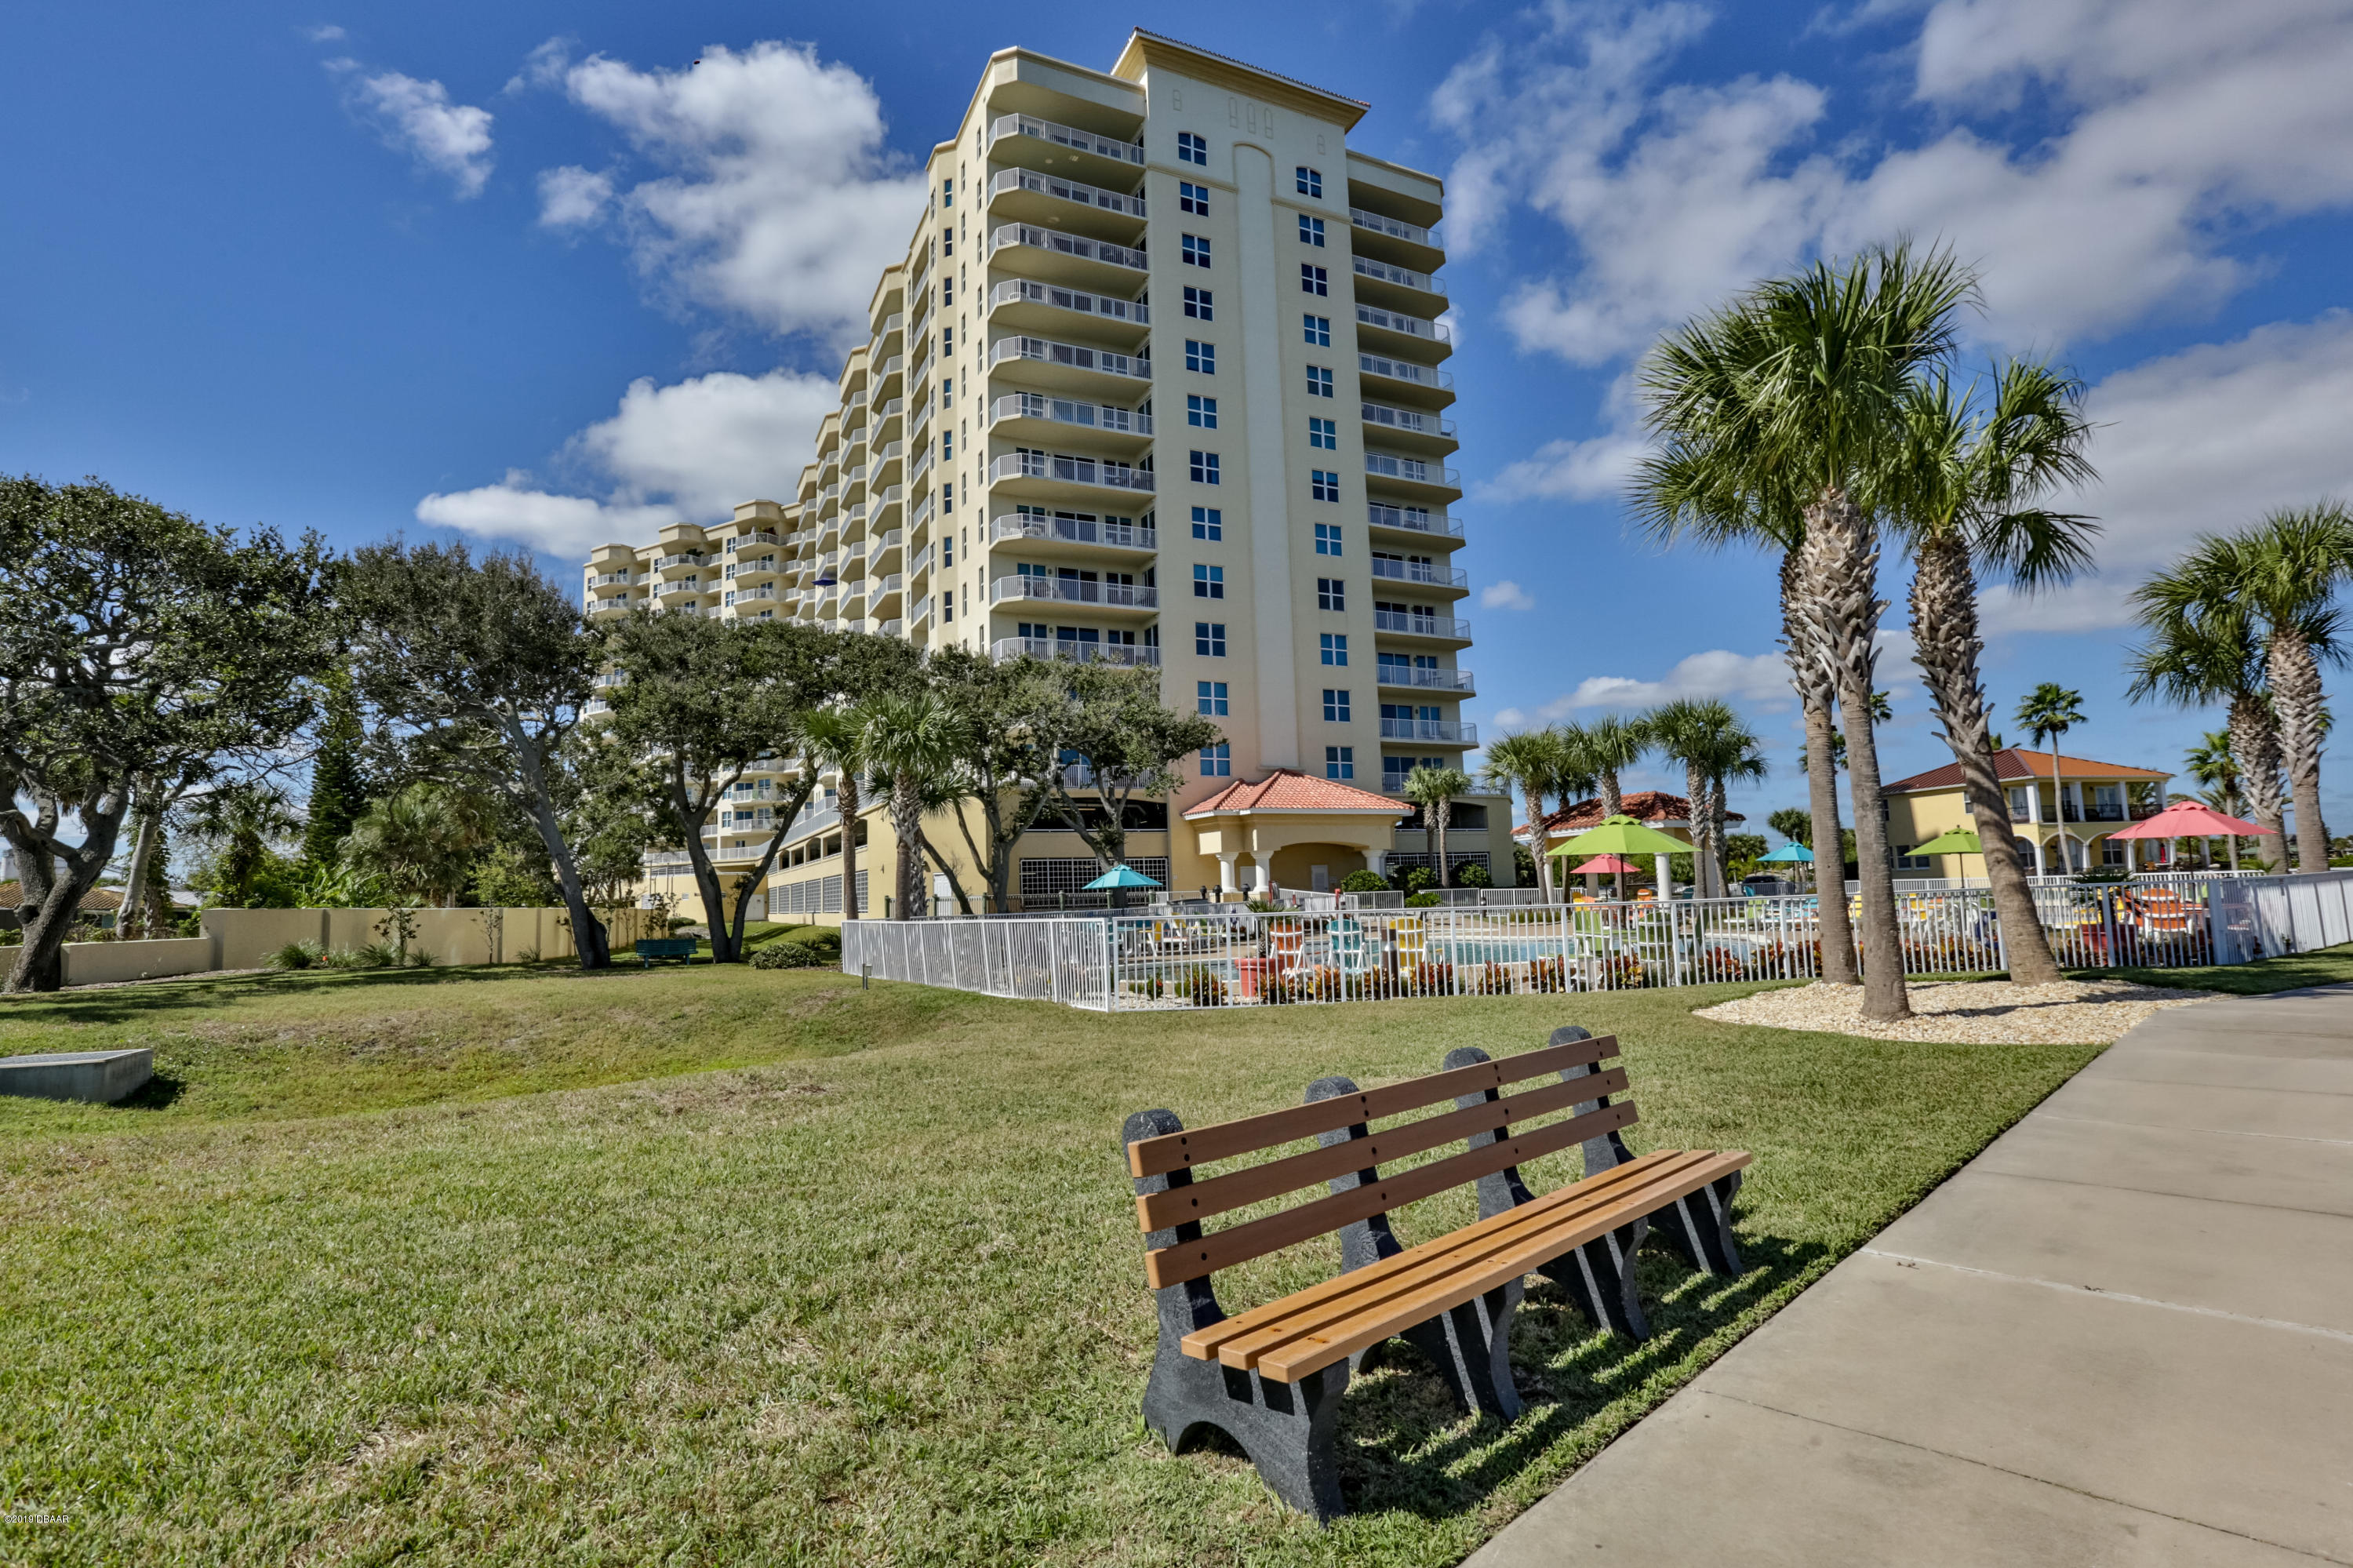 2801 S Ridgewood Avenue, one of homes for sale in South Daytona